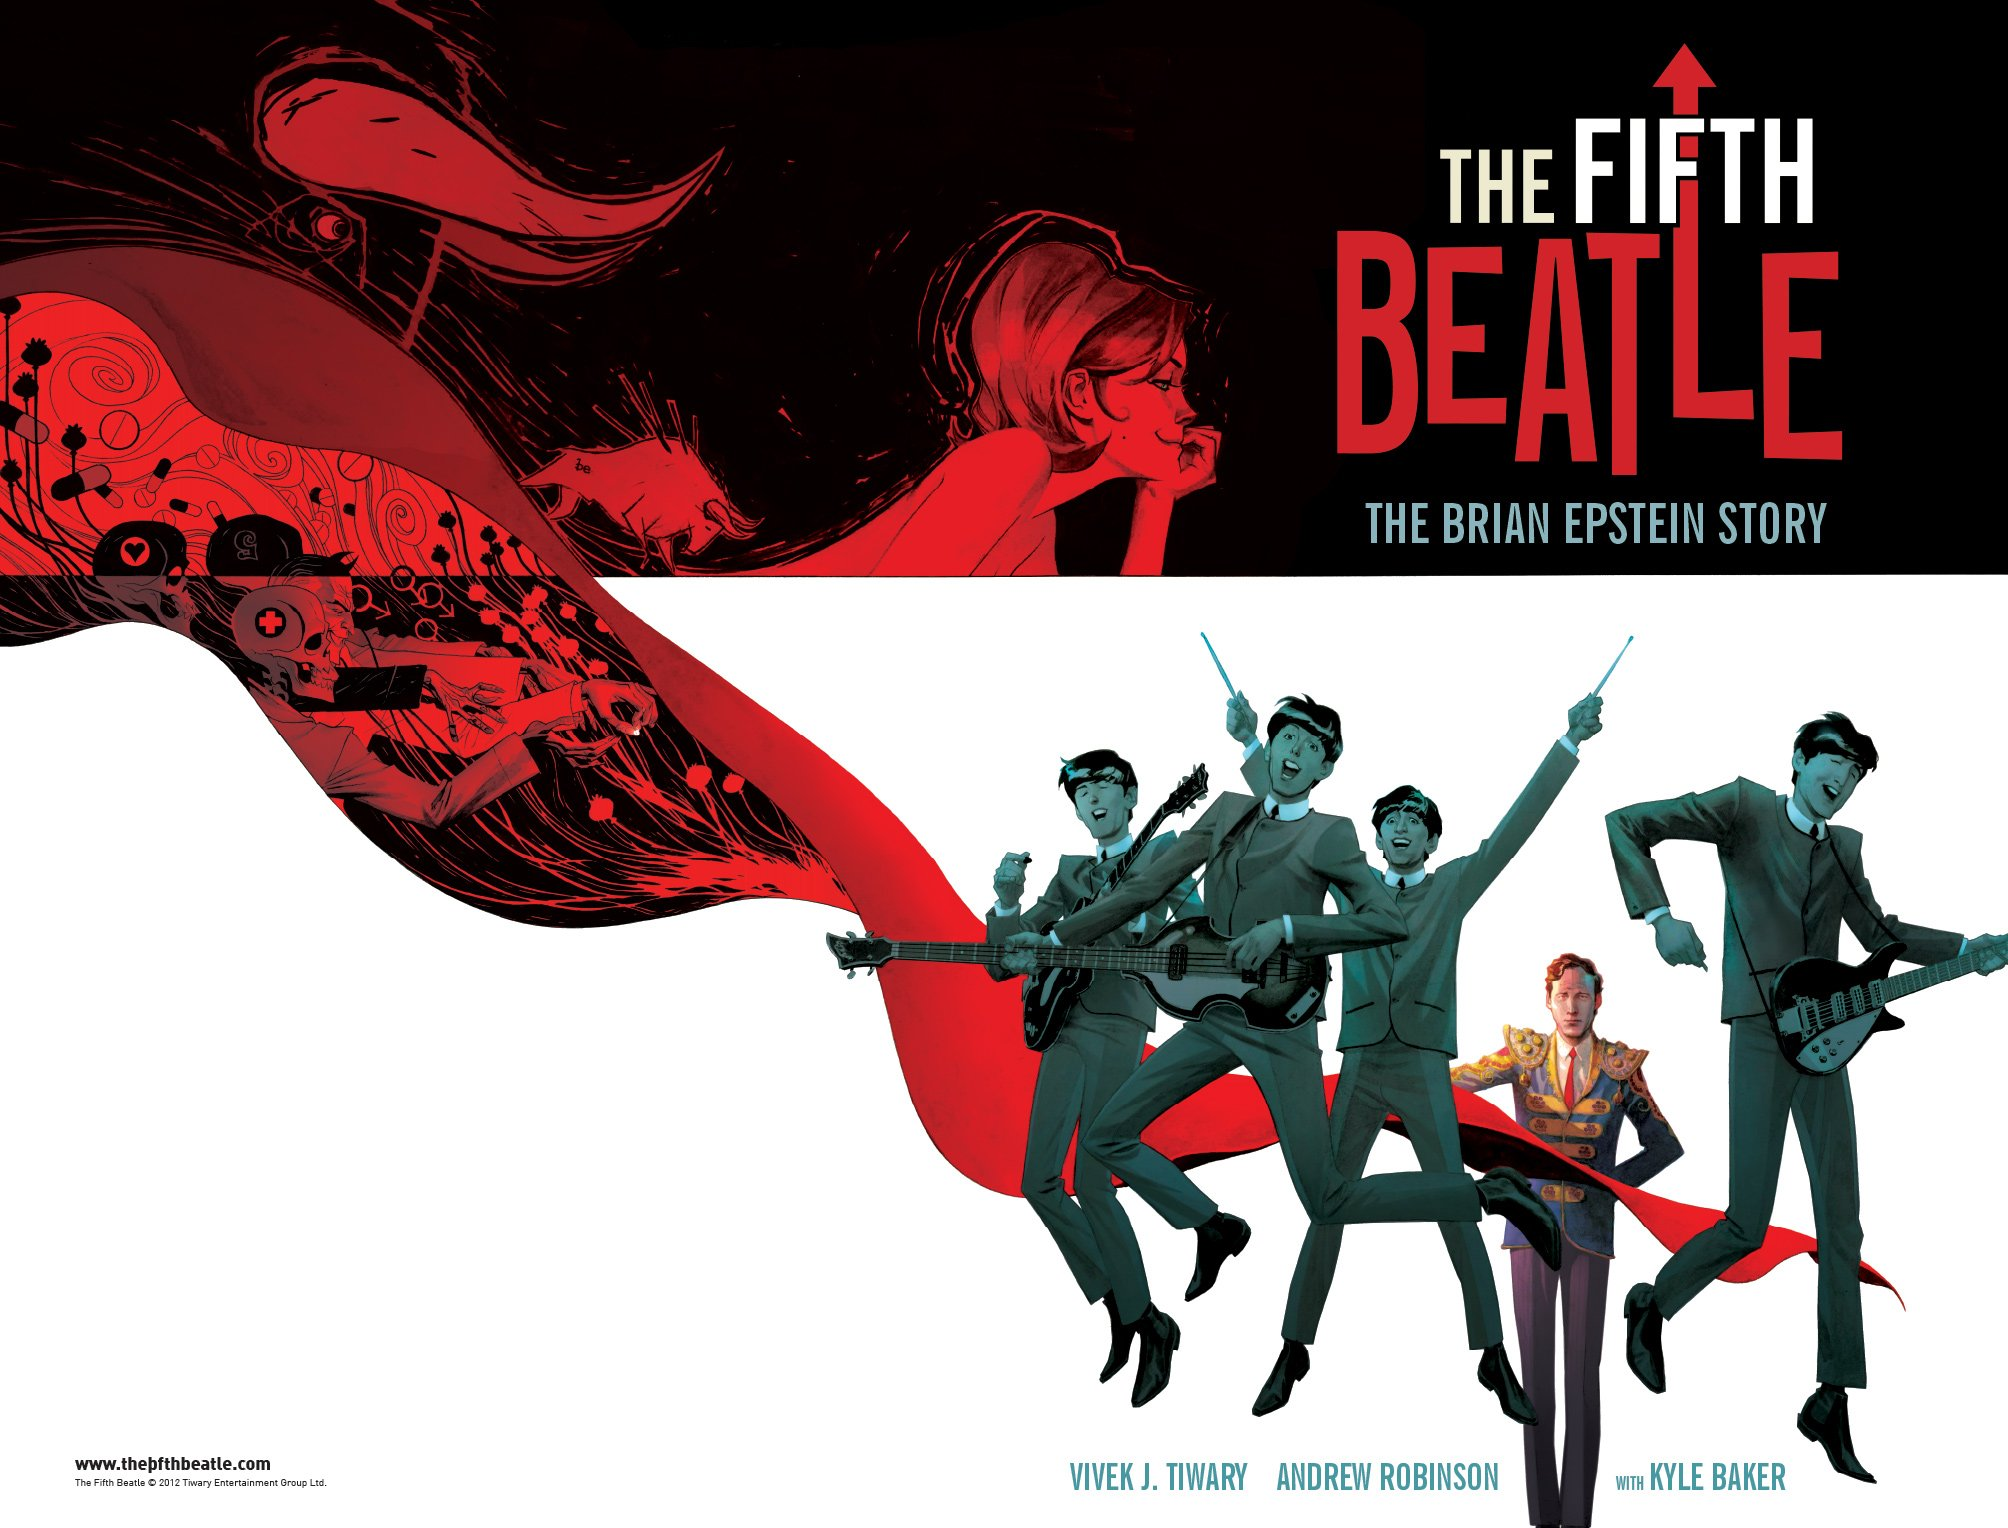 Simon Cowell developing 'The Fifth Beatle' movie on Brian